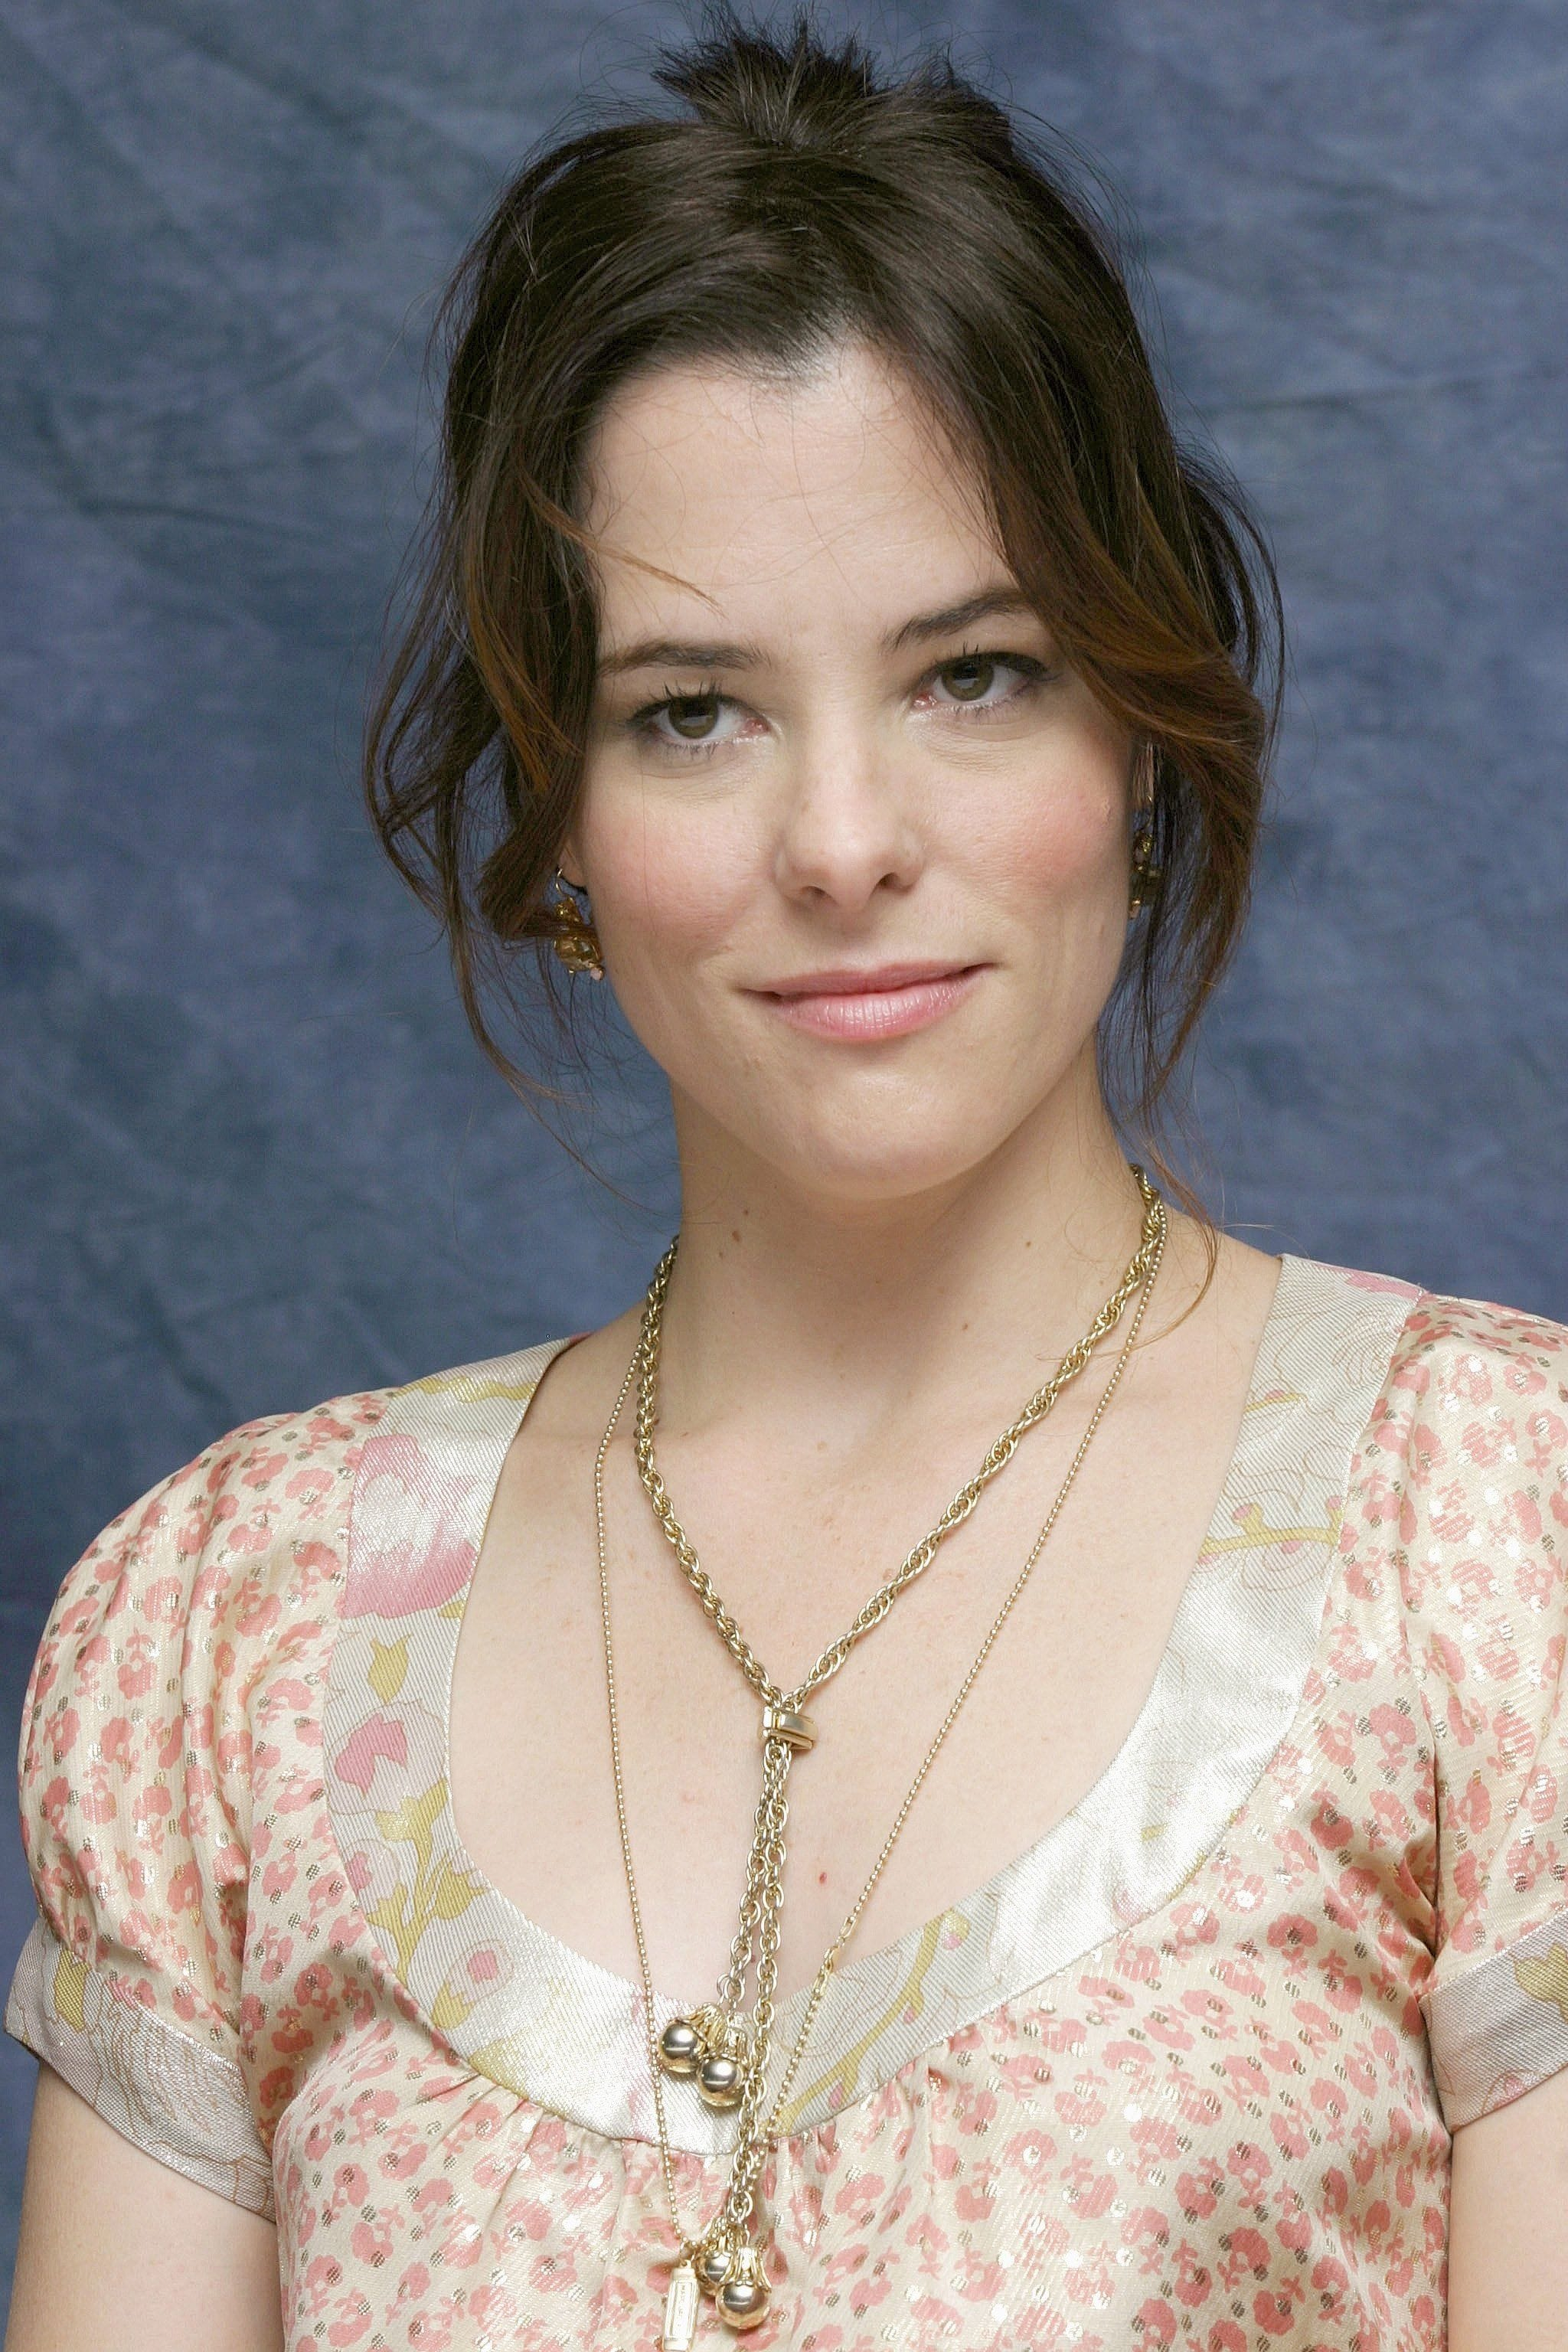 parker posey hd desktop wallpapers 7wallpapersnet